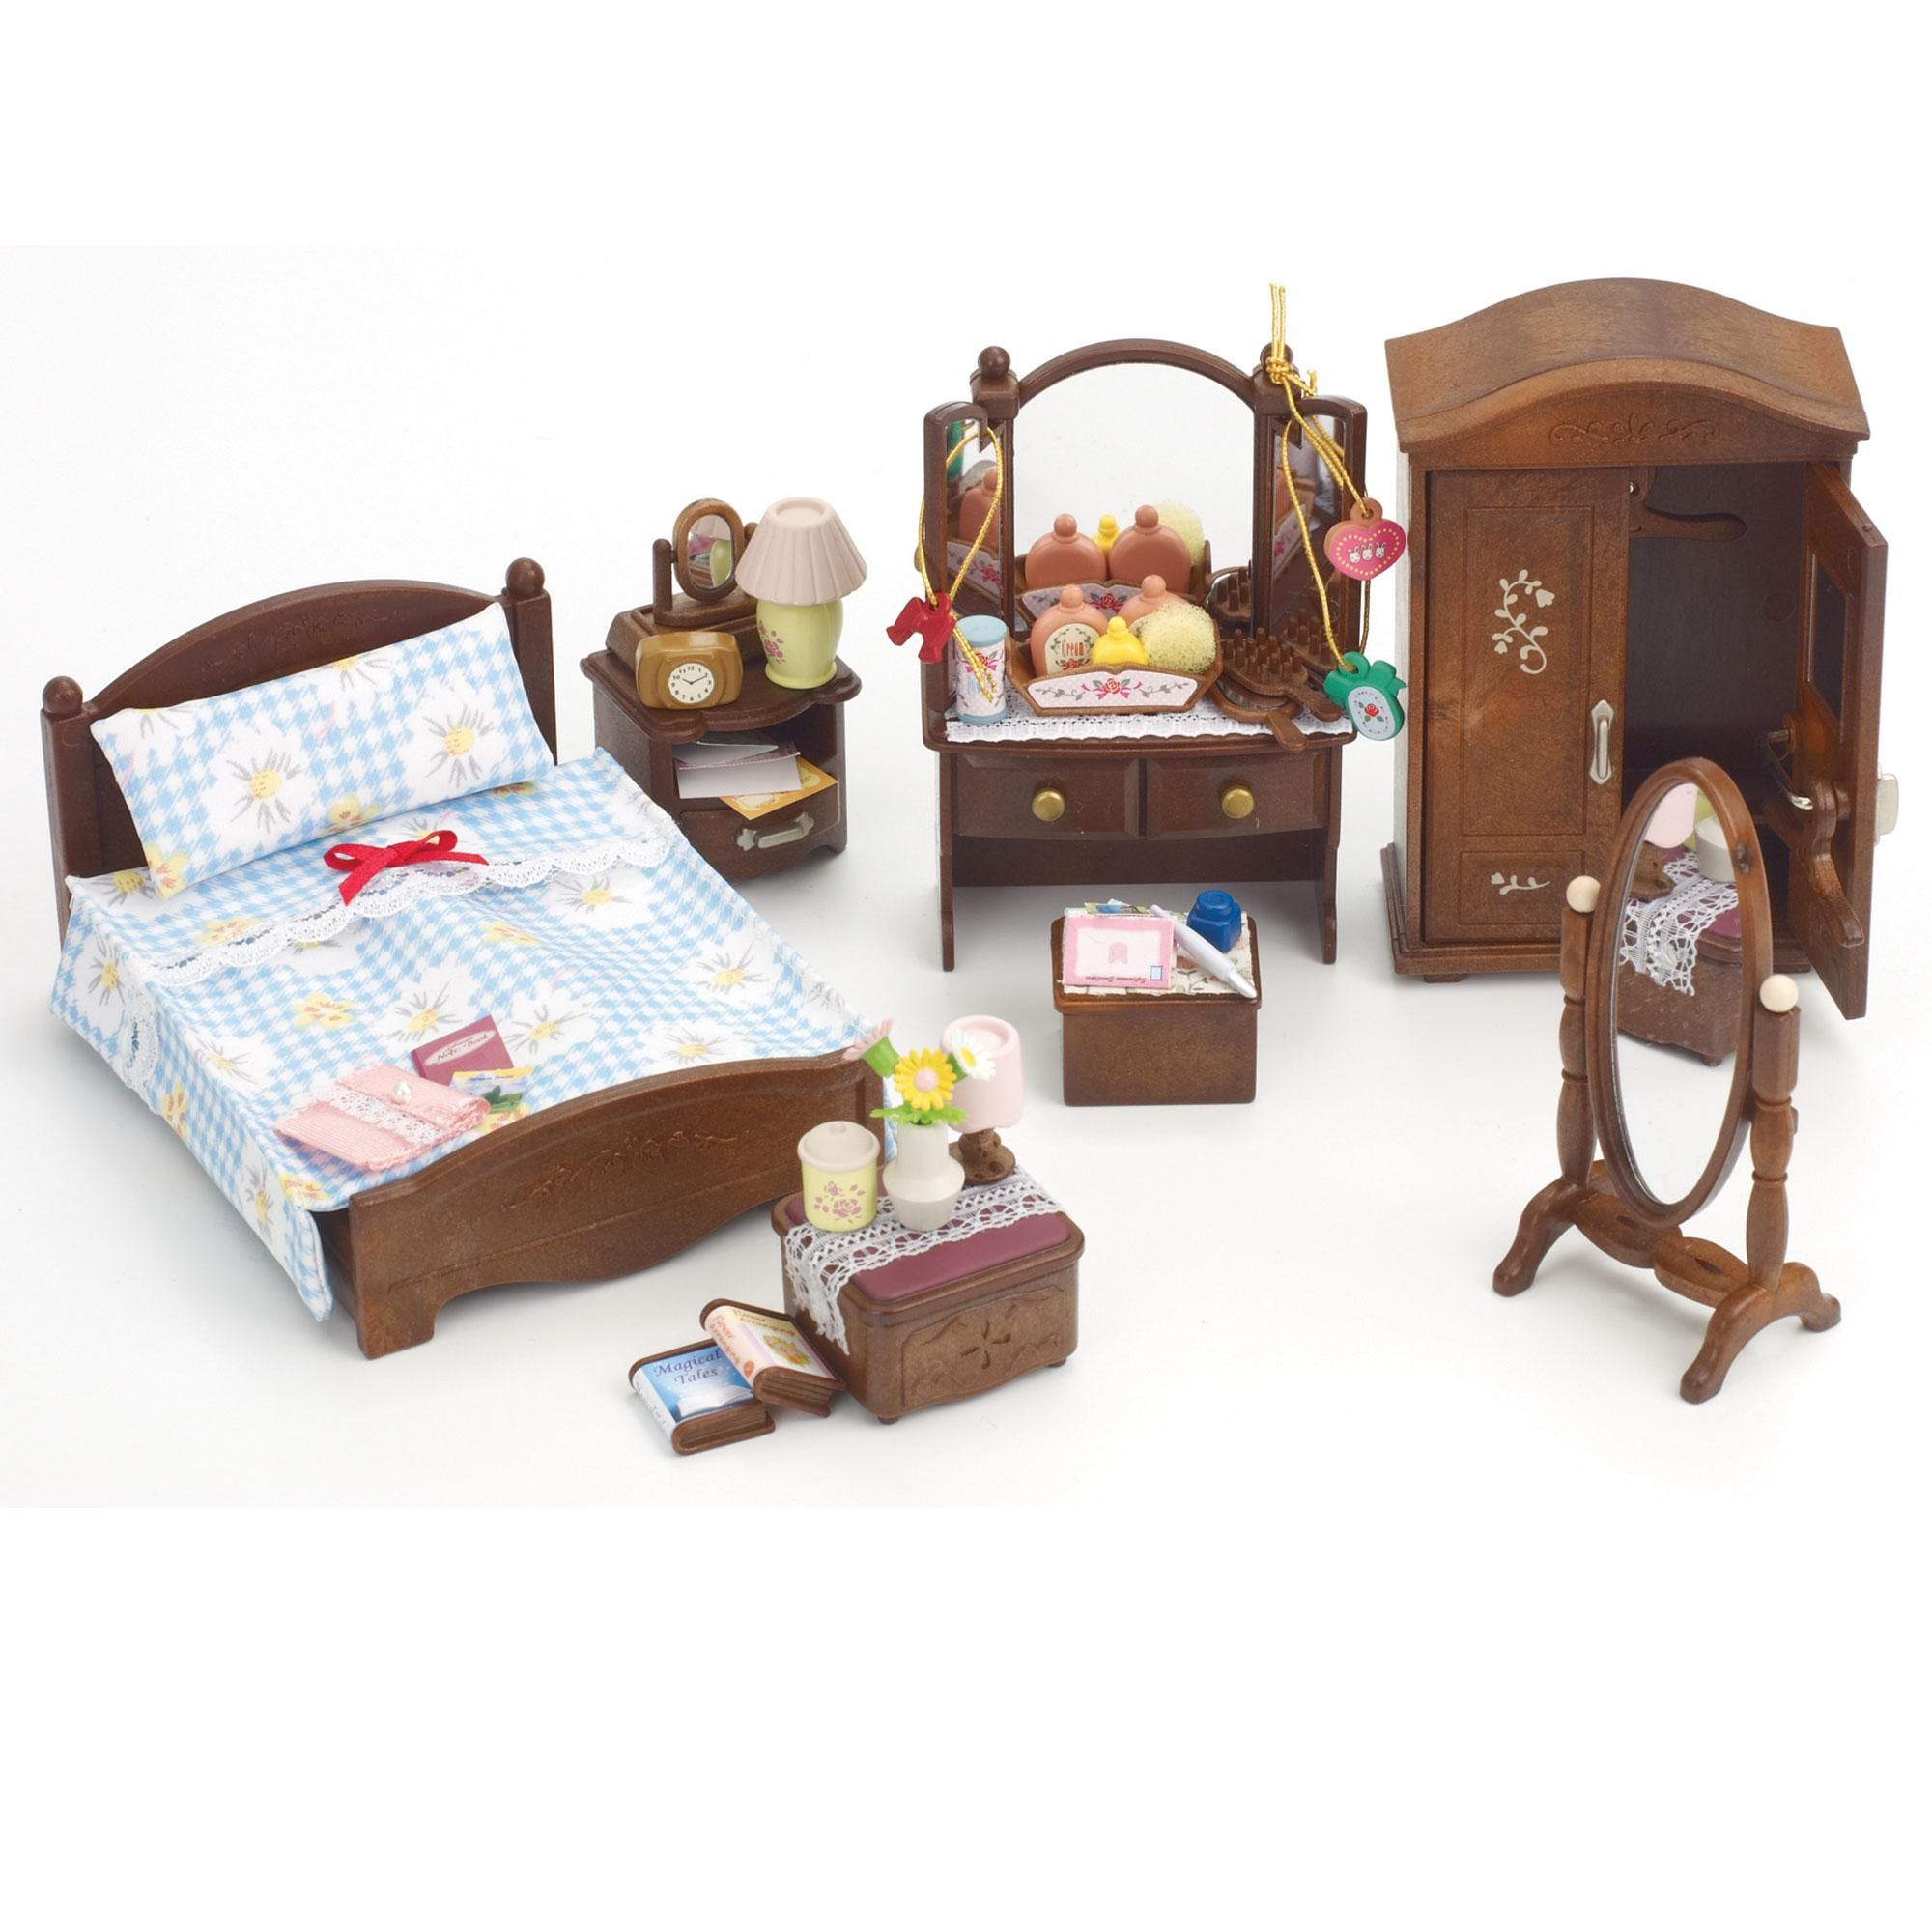 sylvanian master bedroom set sylvanian families s bedroom set www 17451